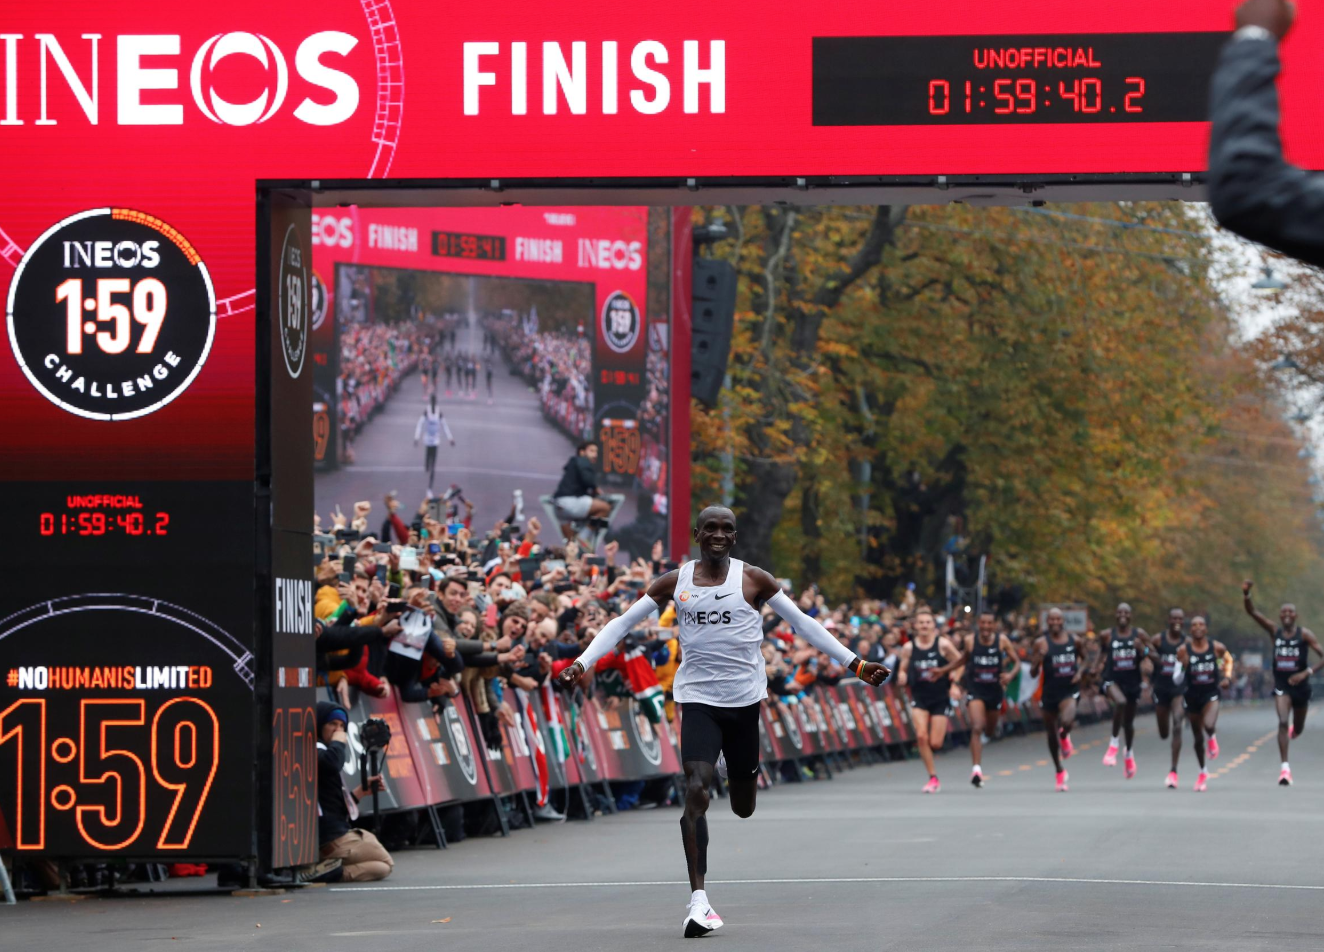 Eliud Kipchoge of Kenya, crossing the line in Austria in 1:59:40.